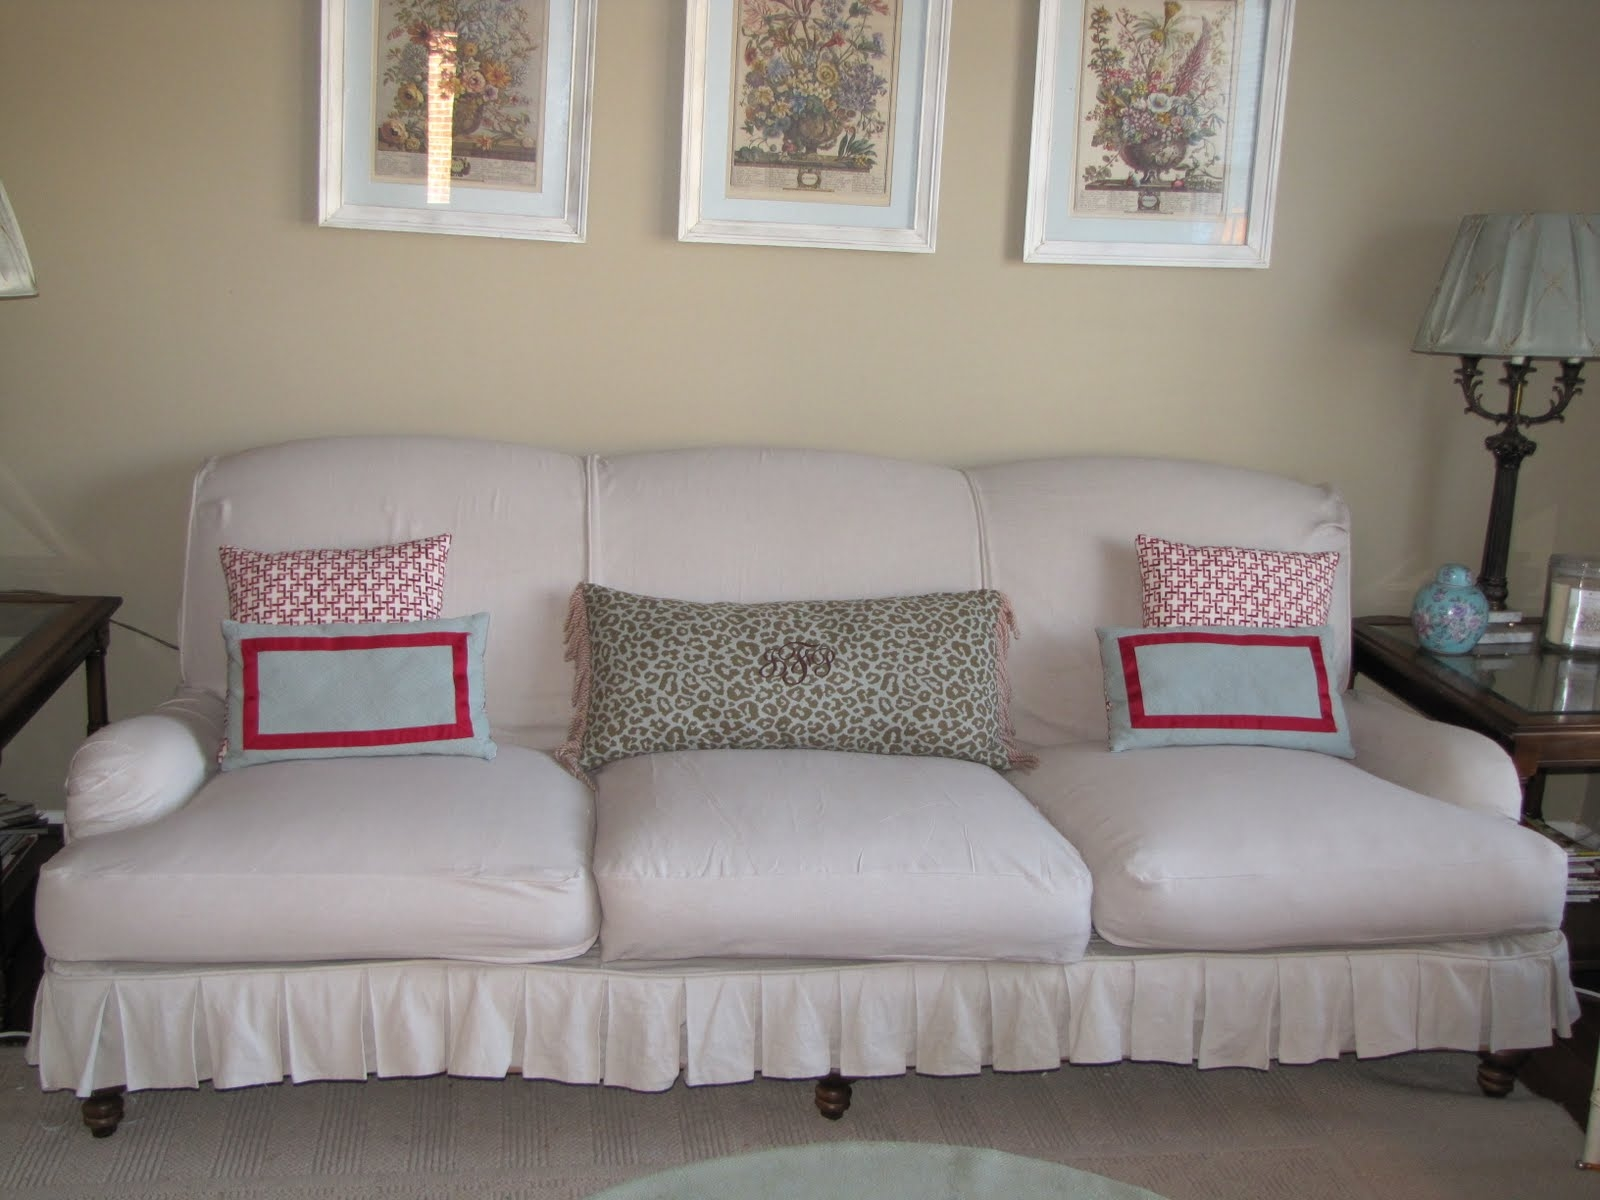 Bibbidi Bobbidi Beautiful How To Slipcover Sofas And Chairs Throughout Slipcovers For Sofas And Chairs (Image 1 of 15)